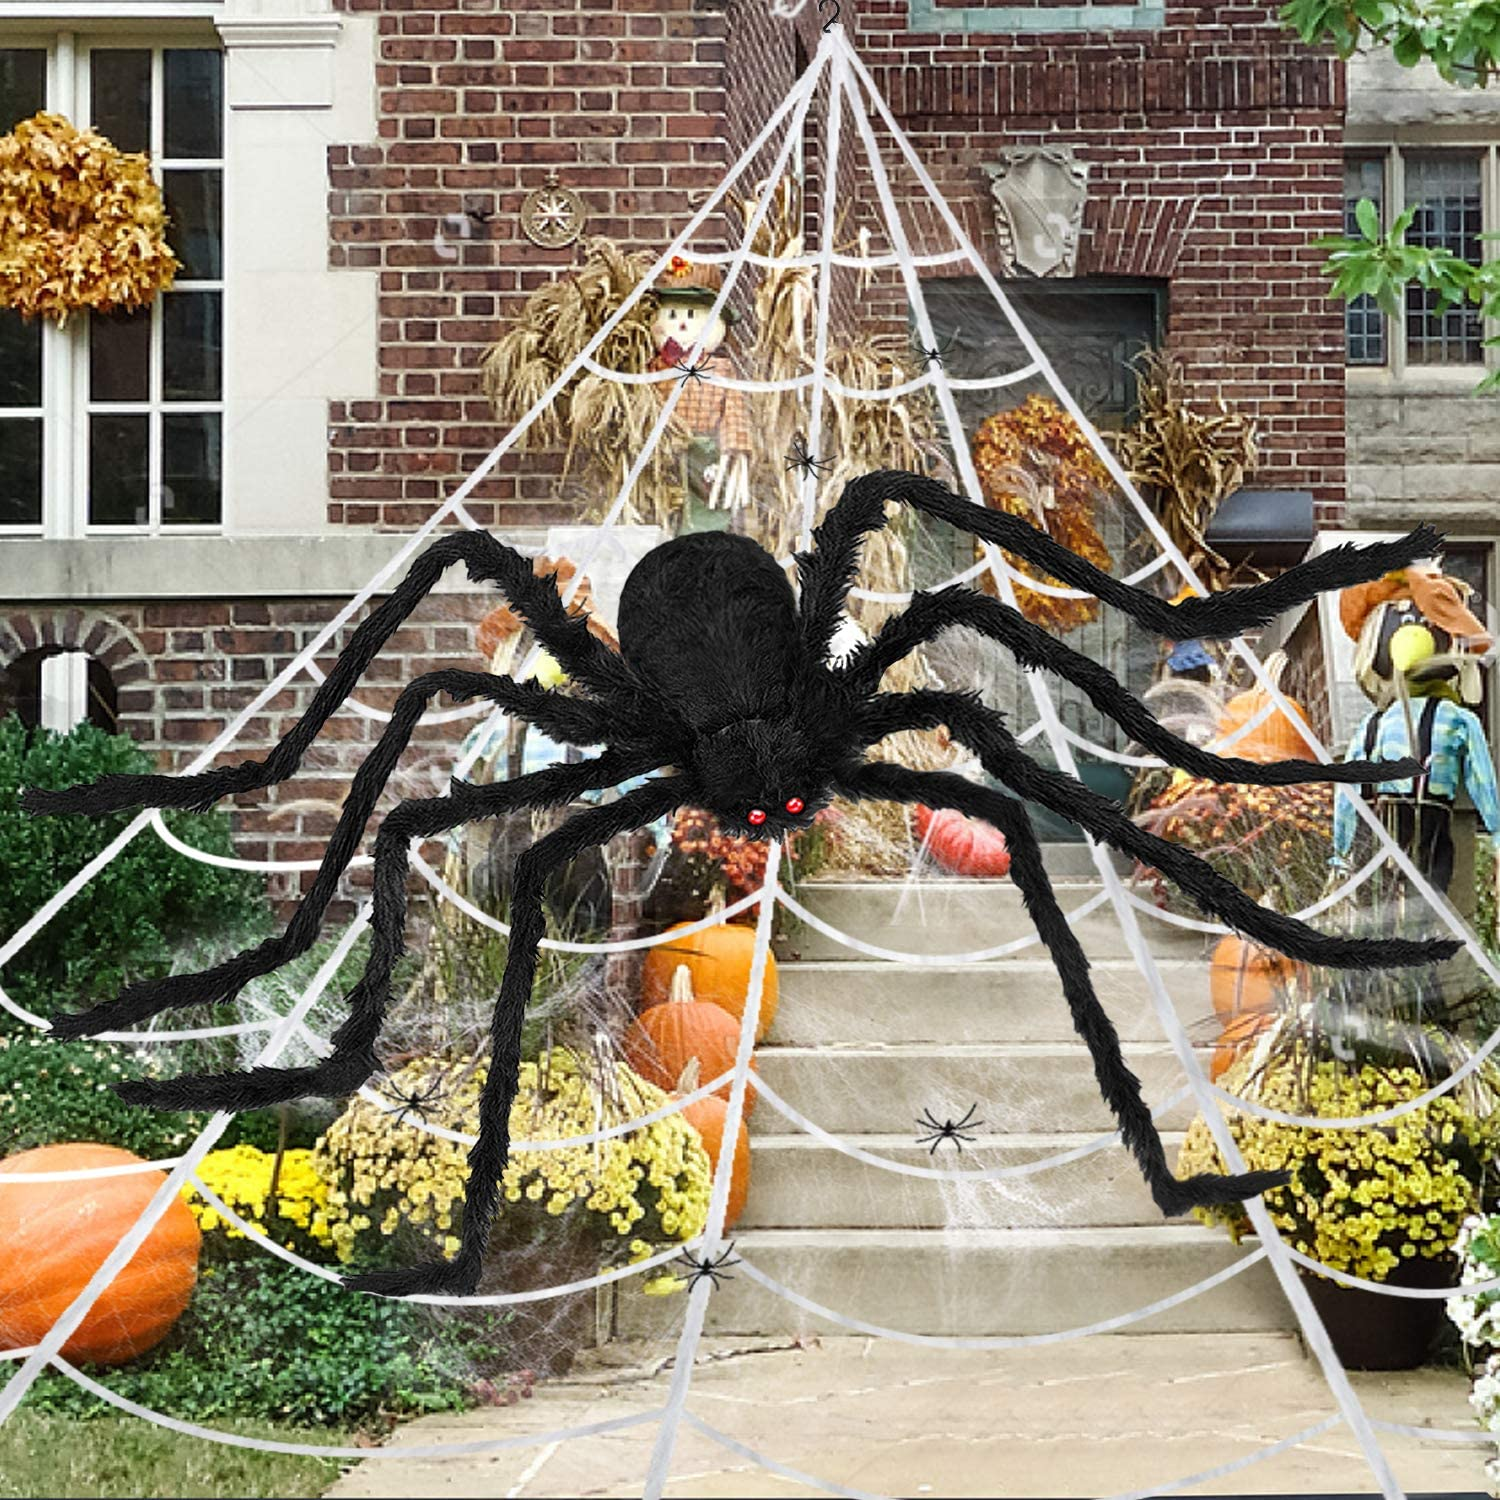 Amazon Com Halloween Decorations Outdoor 200 Spider Web 60 Giant Spider With Extra Stretch Cobwebs And 10 Small Plastic Spiders Halloween Outdoor Scary Decorations Yard Home Outside Parties House Decor Home Kitchen